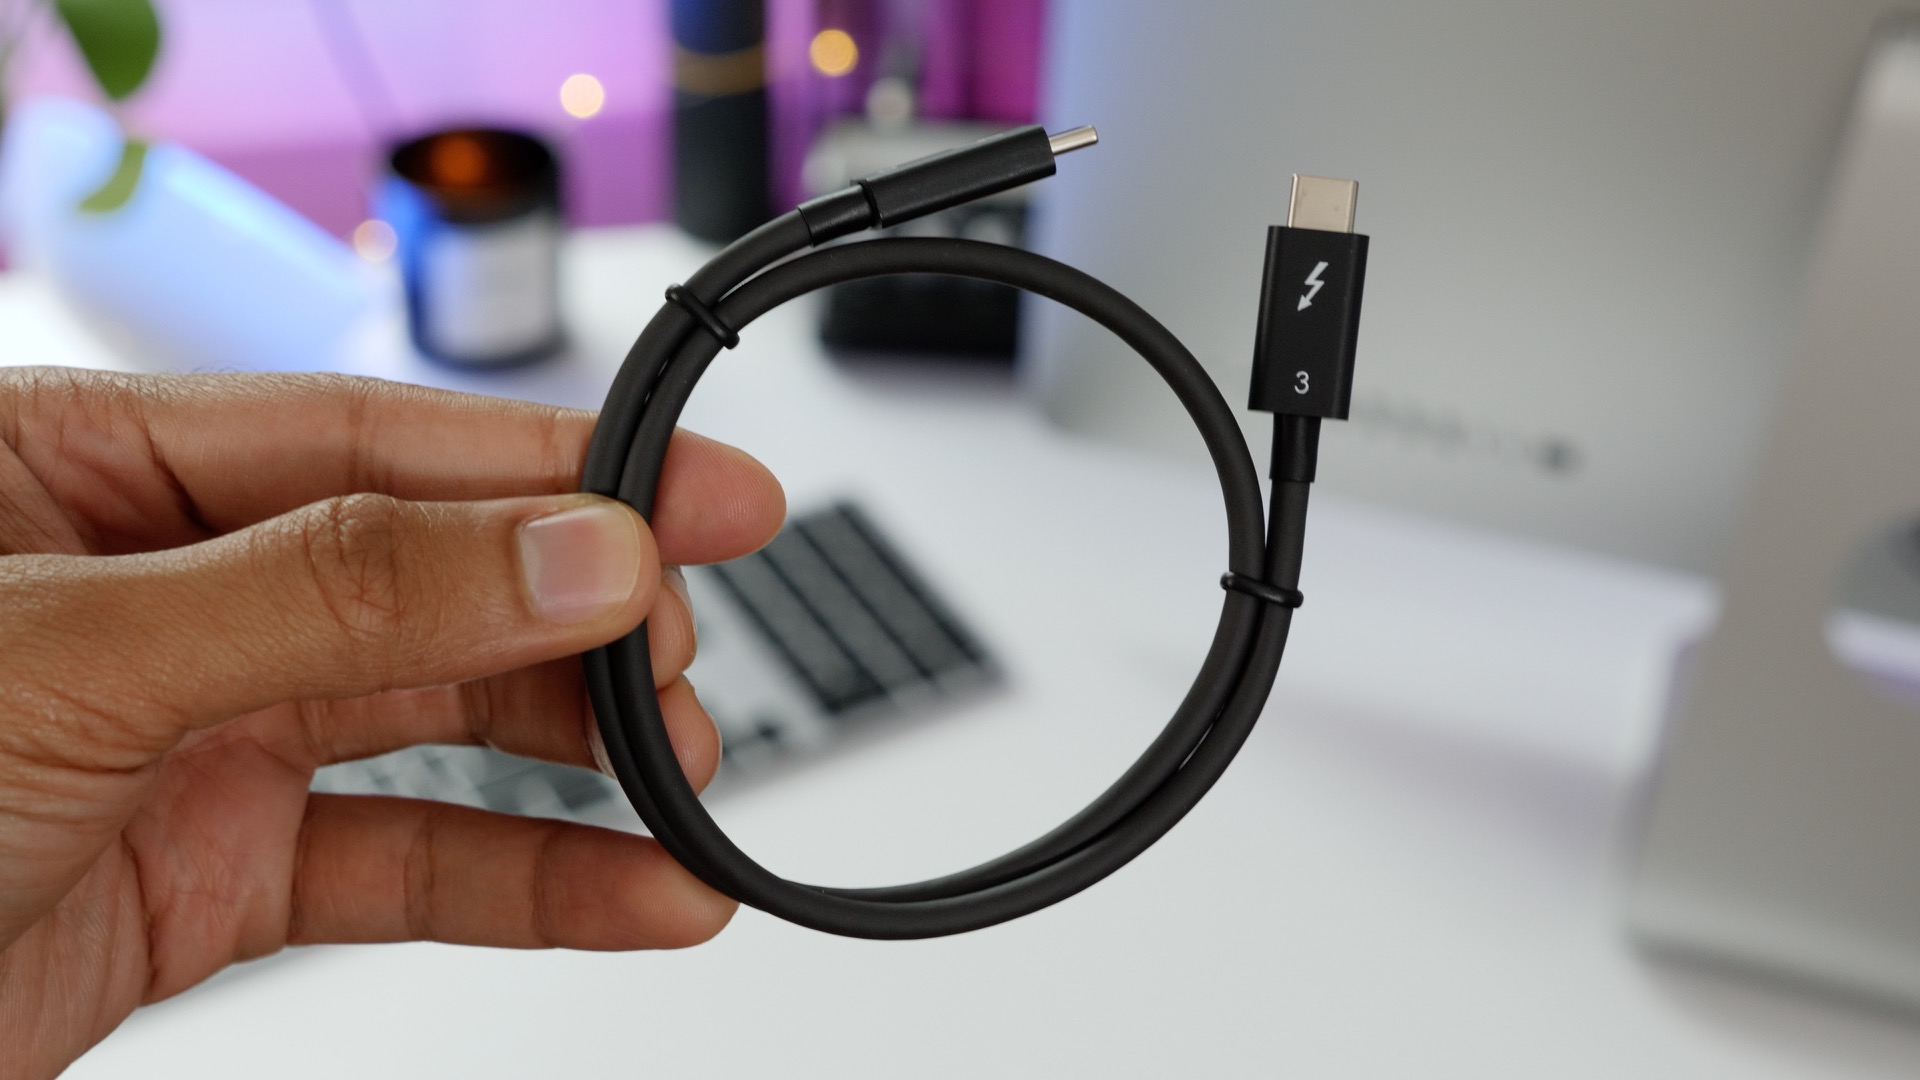 It's nice to have an included Thunderbolt 3 cable, but the cable is quite short